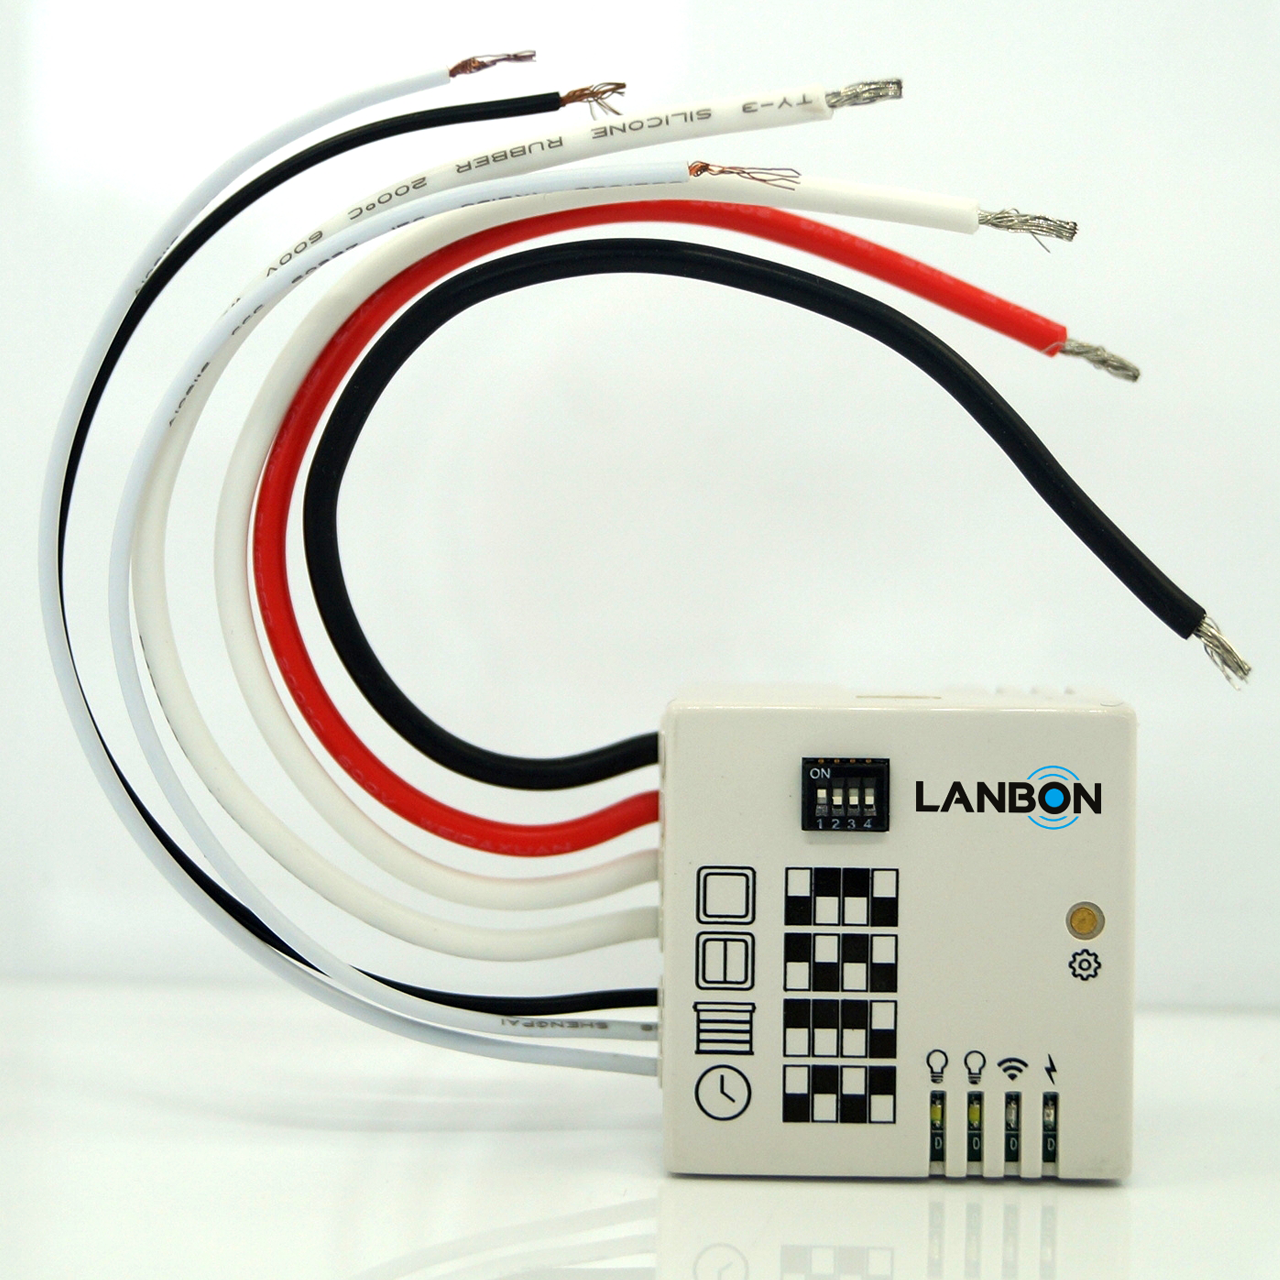 Lanbon small wifi module 2 gang smart home switch unique design app and amazon echo control